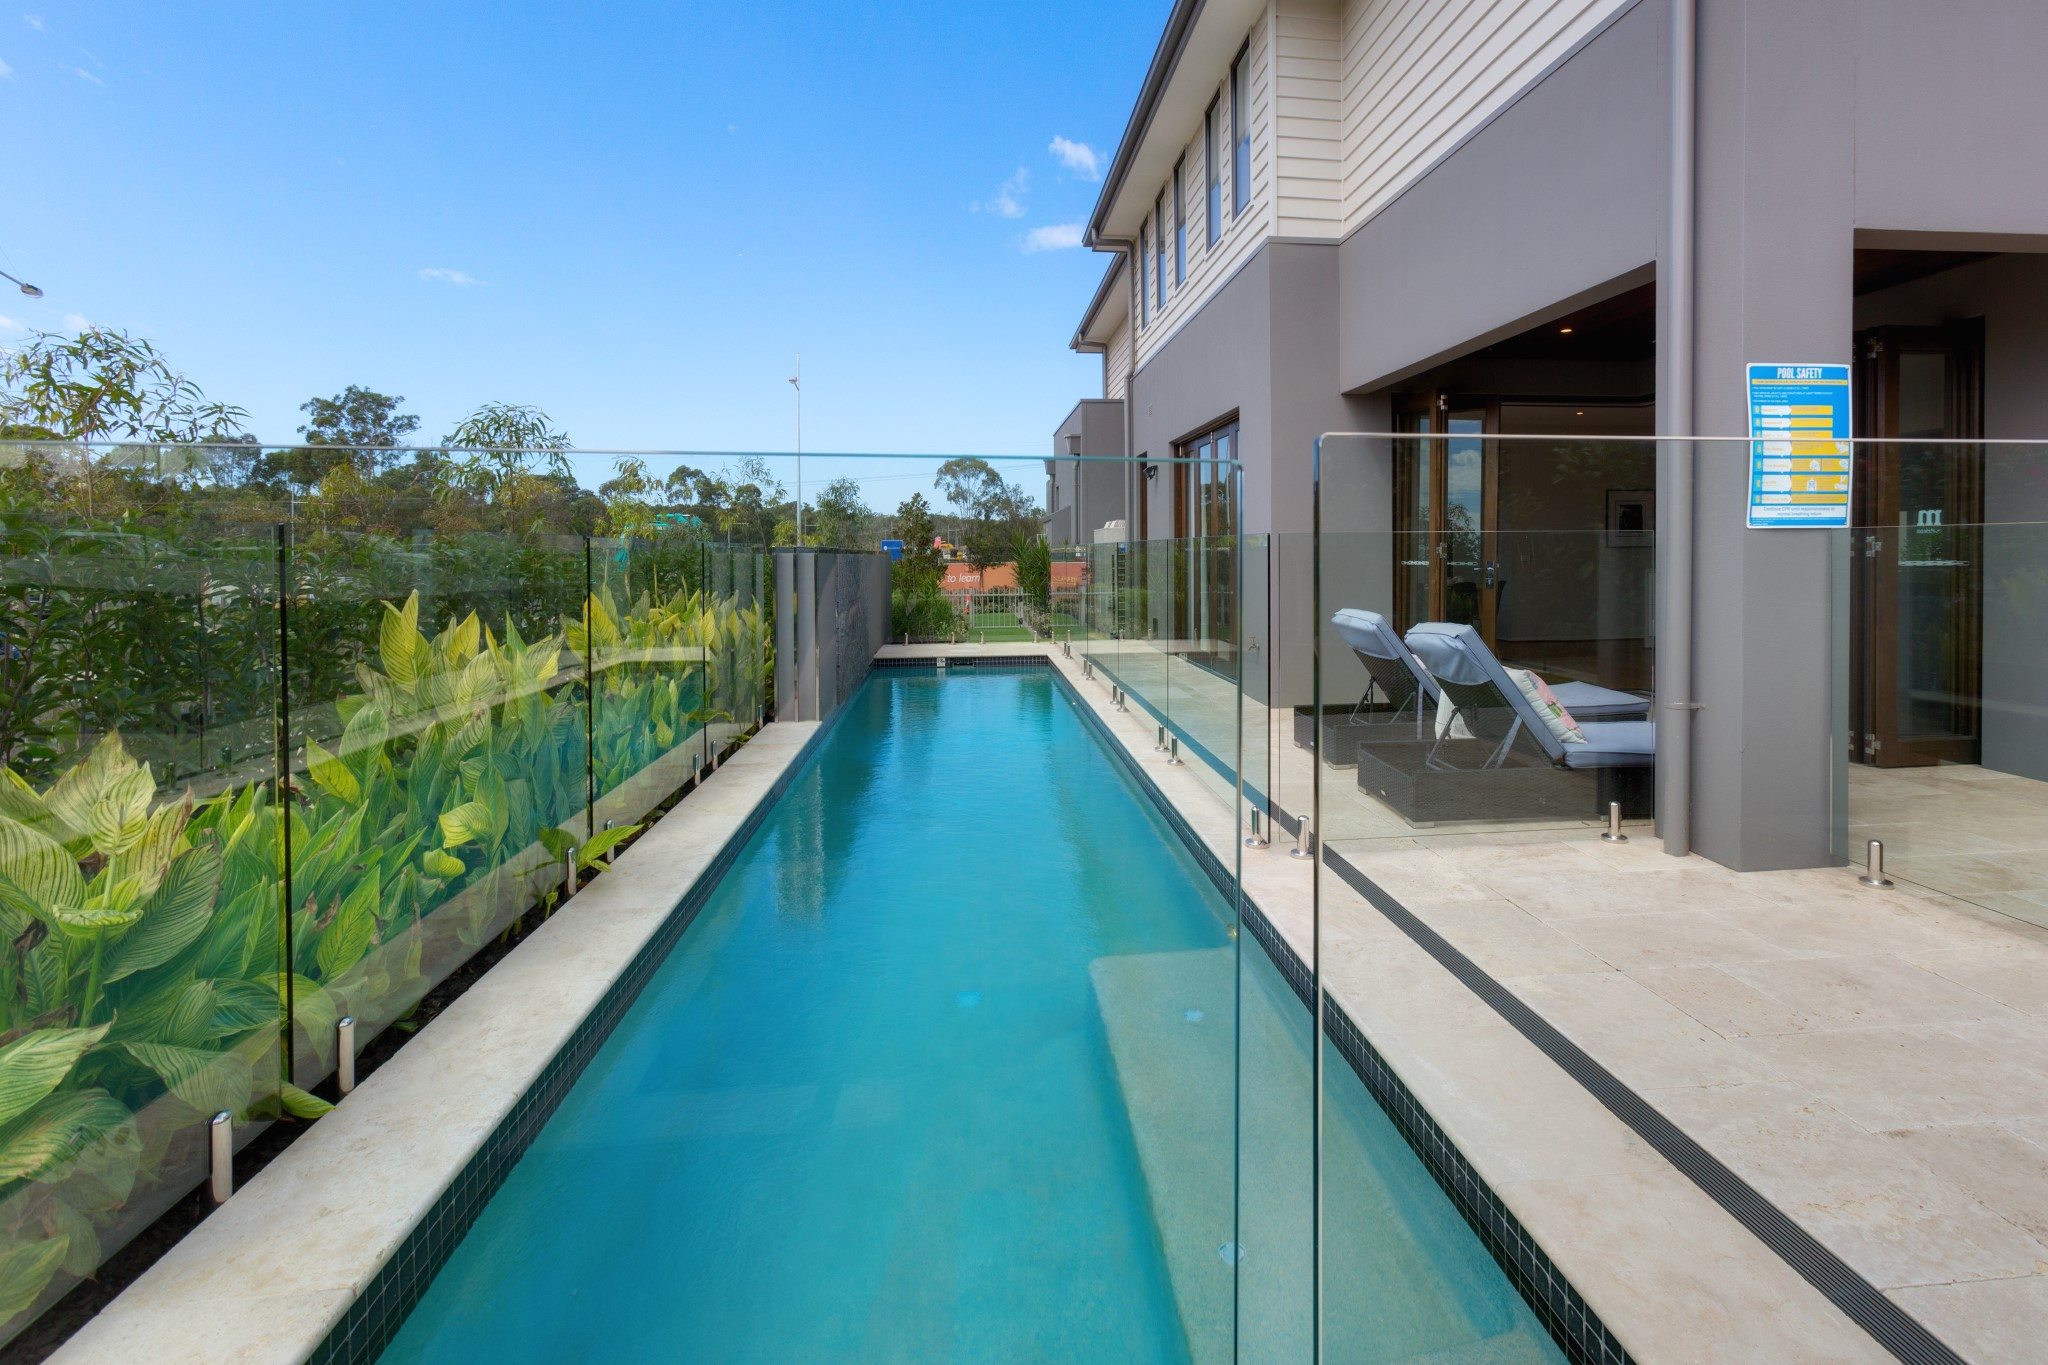 Fitness and Lap pool and Grey color house